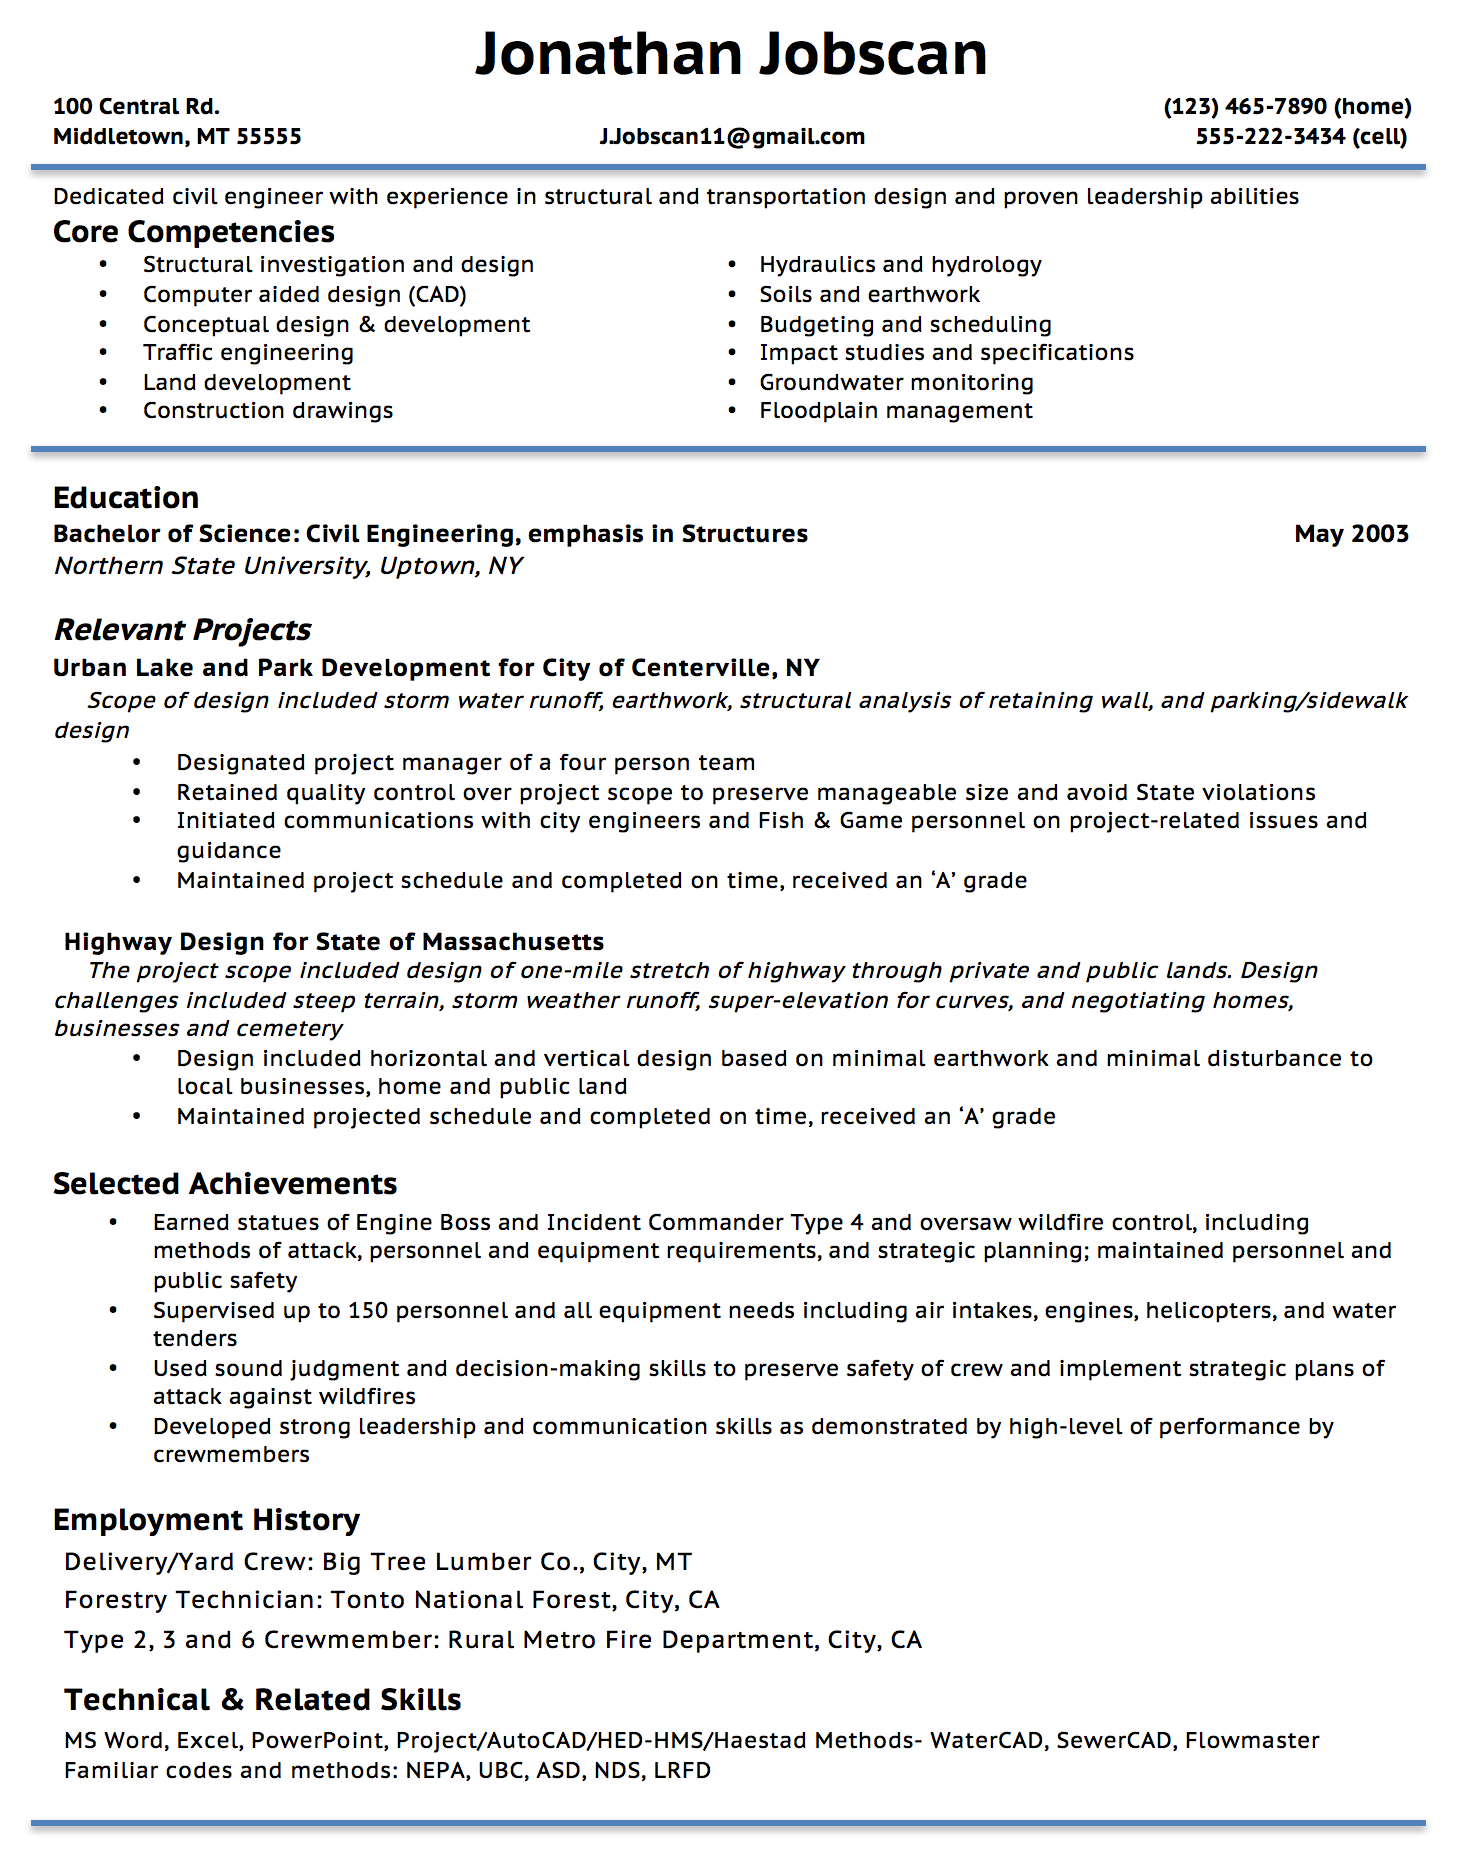 Opposenewapstandardsus  Sweet Resume Writing Guide  Jobscan With Interesting Example Of A Functional Resume Format With Appealing Resume Qualities Also Cpa Candidate Resume In Addition Salesforce Developer Resume And Resume Downloads As Well As Resume Wording Examples Additionally Best Way To Make A Resume From Jobscanco With Opposenewapstandardsus  Interesting Resume Writing Guide  Jobscan With Appealing Example Of A Functional Resume Format And Sweet Resume Qualities Also Cpa Candidate Resume In Addition Salesforce Developer Resume From Jobscanco